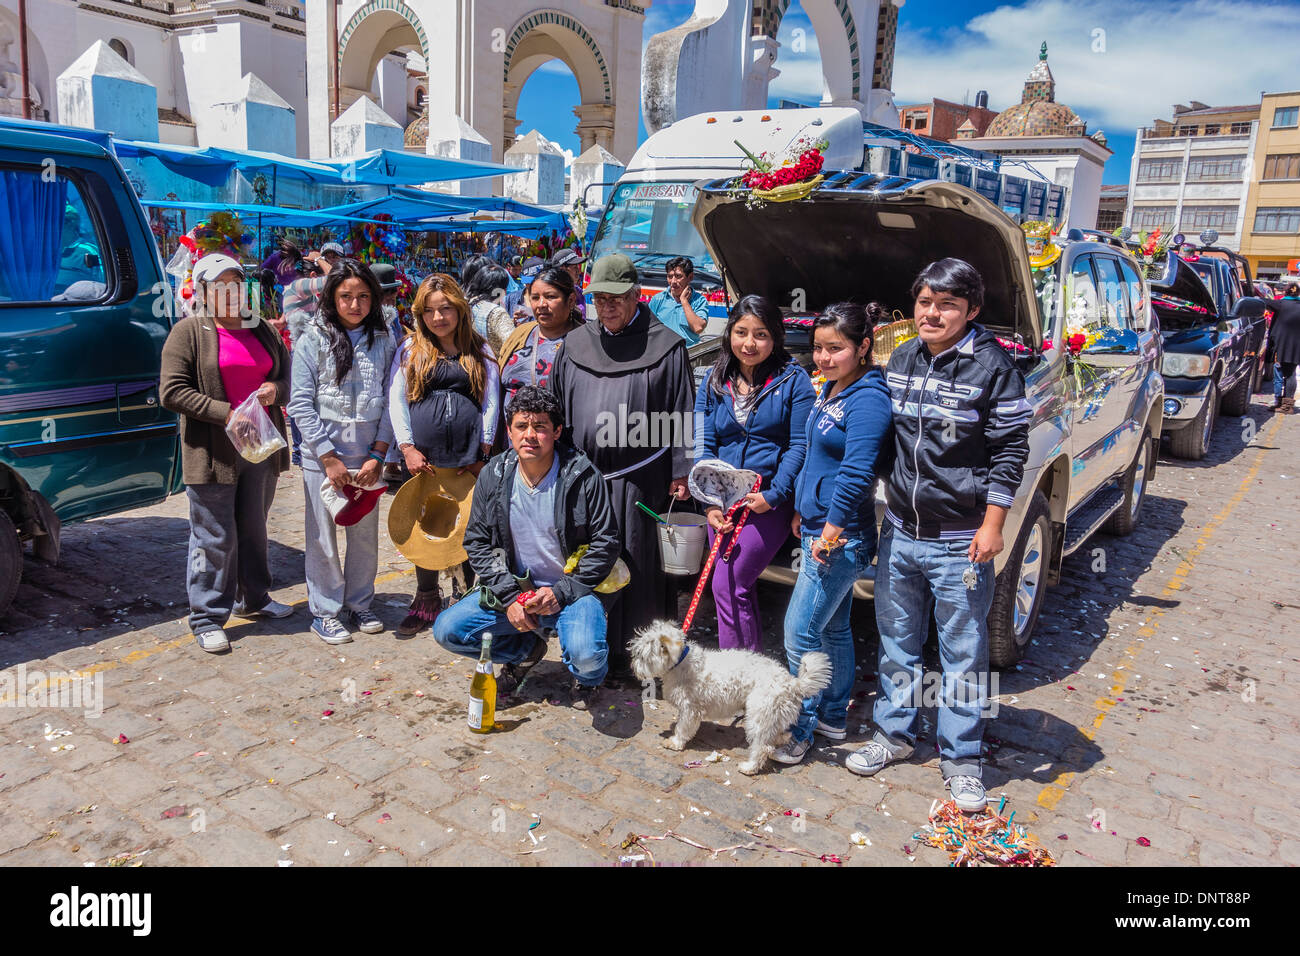 A large family grouping, at the blessing of the automobiles in front of the Basilica of Our Lady of Copacabana, Bolivia. - Stock Image